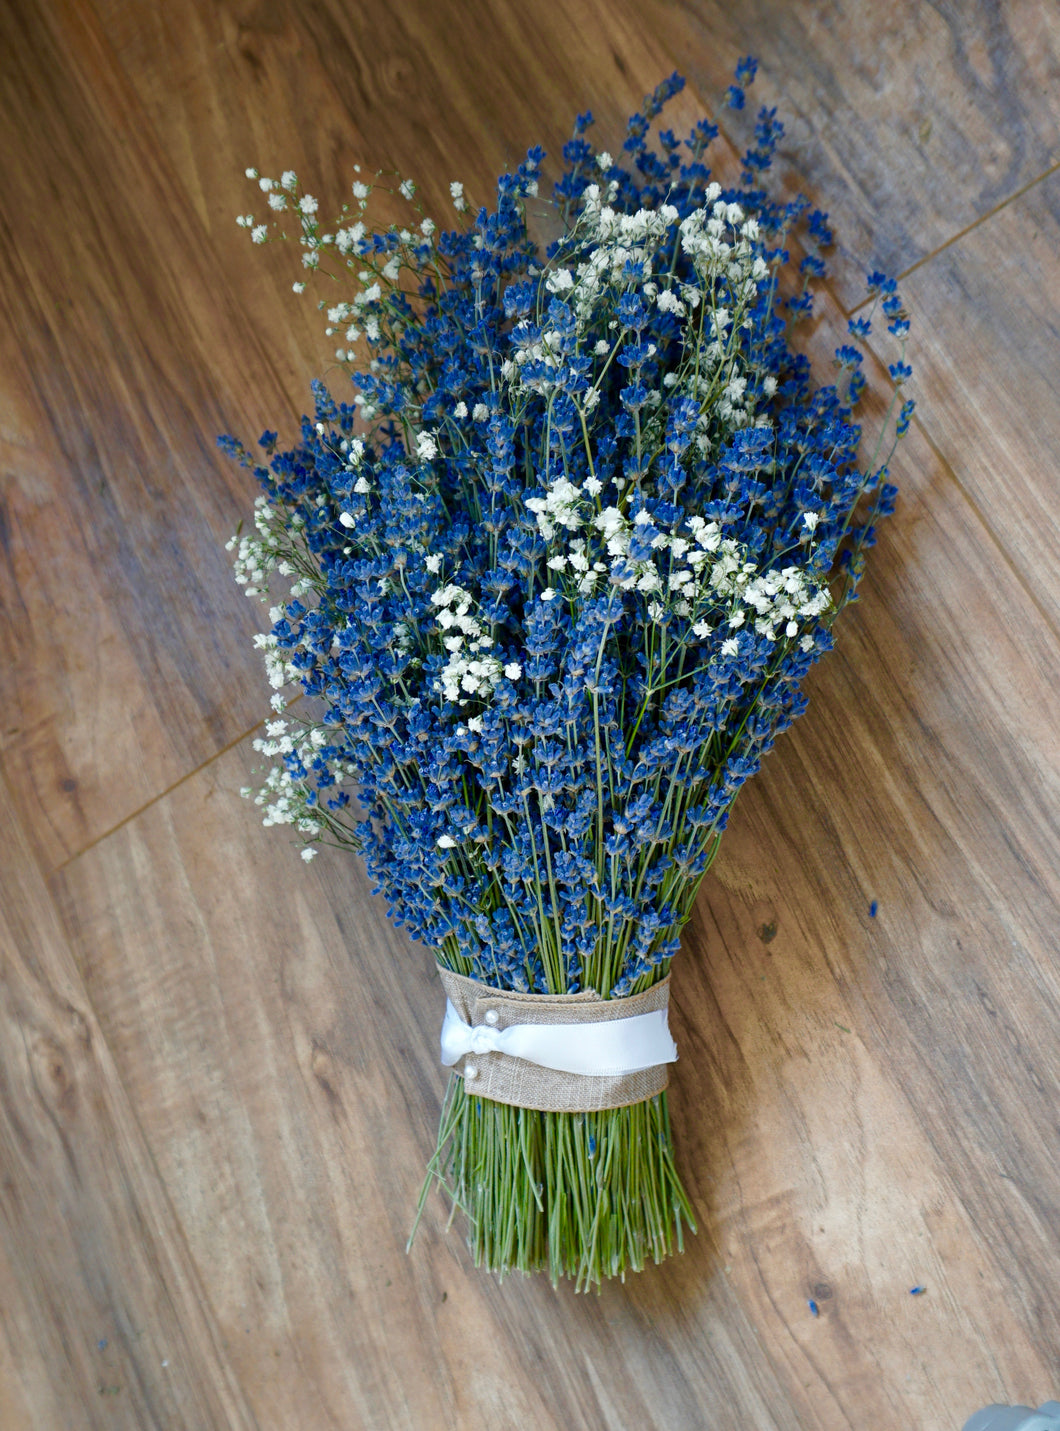 Bridal Bouquets - Dried Lavender with Baby's Breath - Deep Colors, Beautiful & Fragrant - Lavender Wedding Co